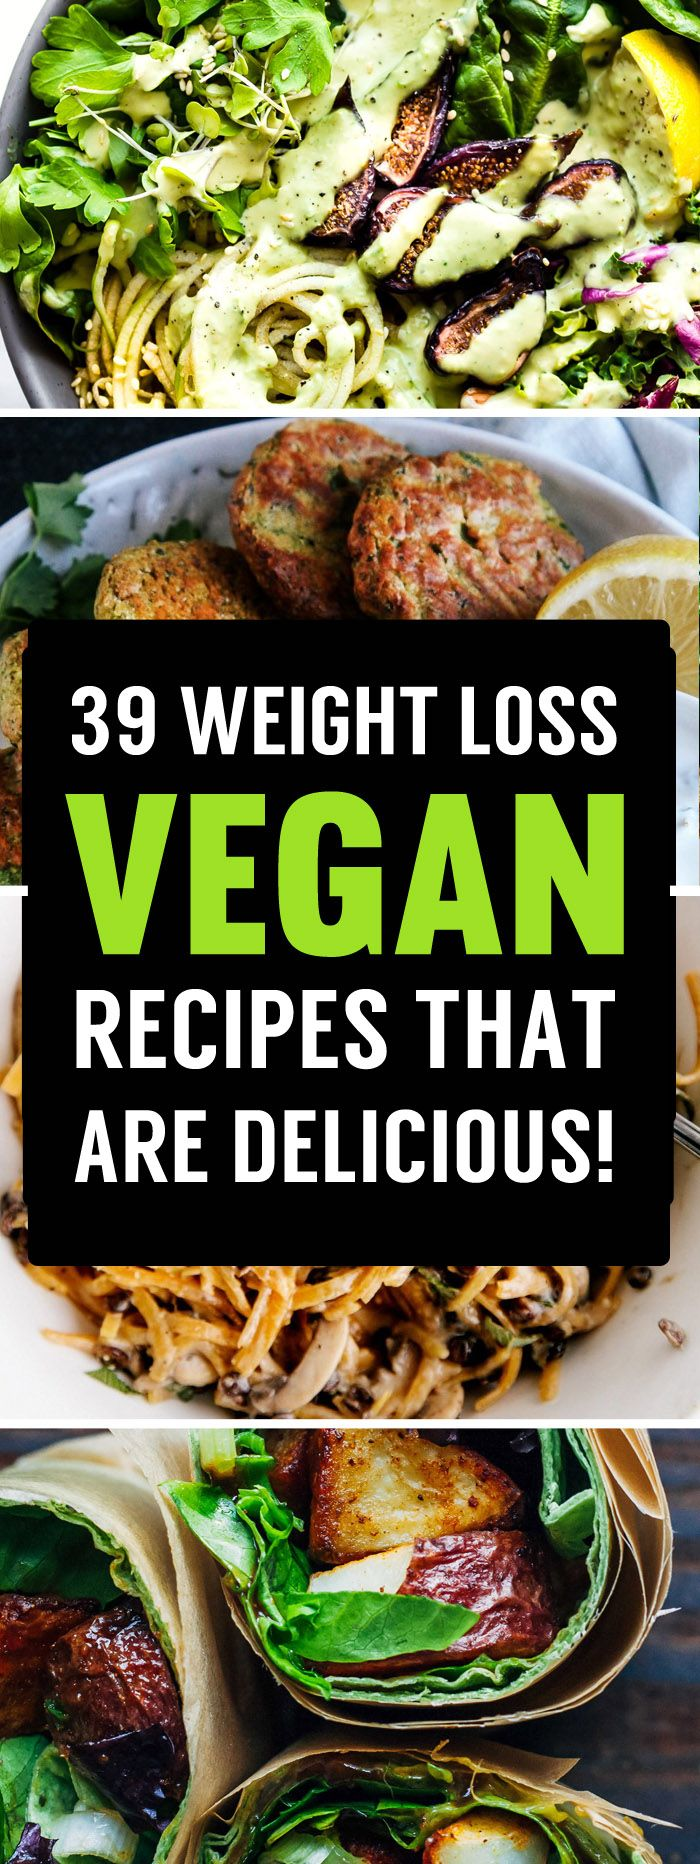 39 Delicious Vegan Recipes That Are Perfect For Losing